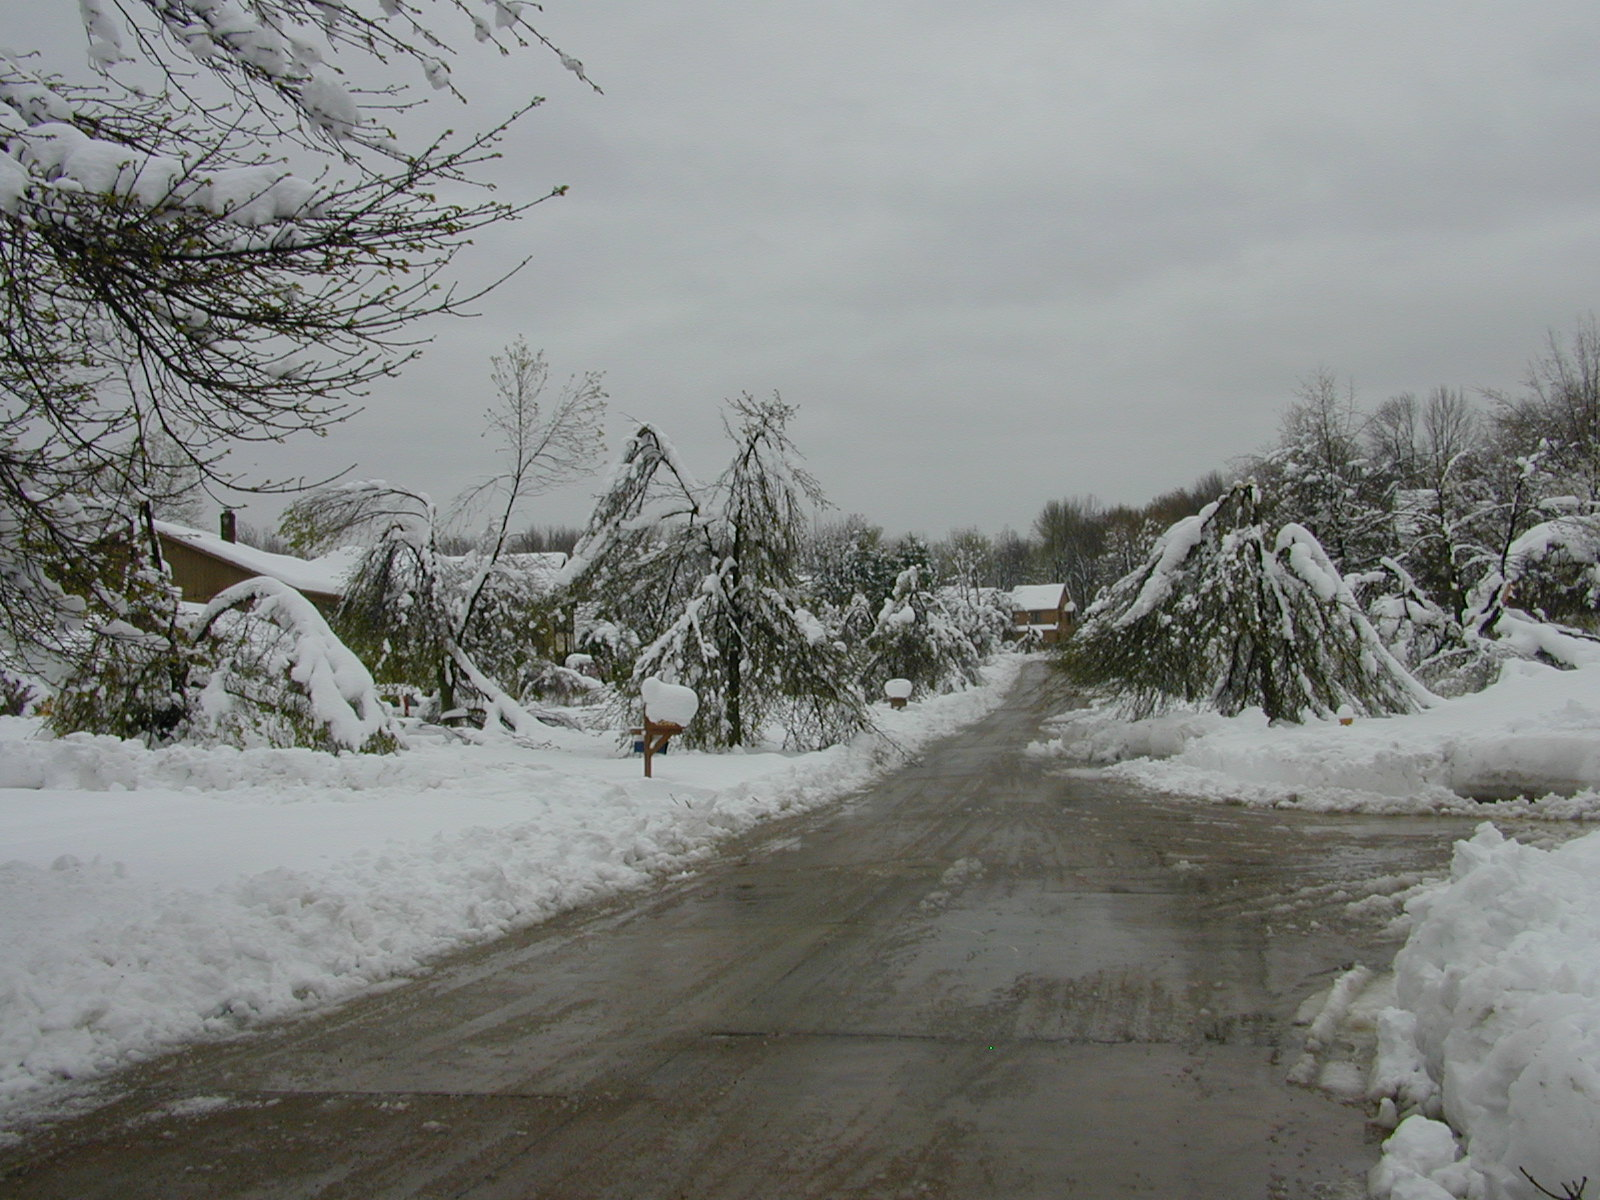 Fallen trees and trees with branches weighed down from snow